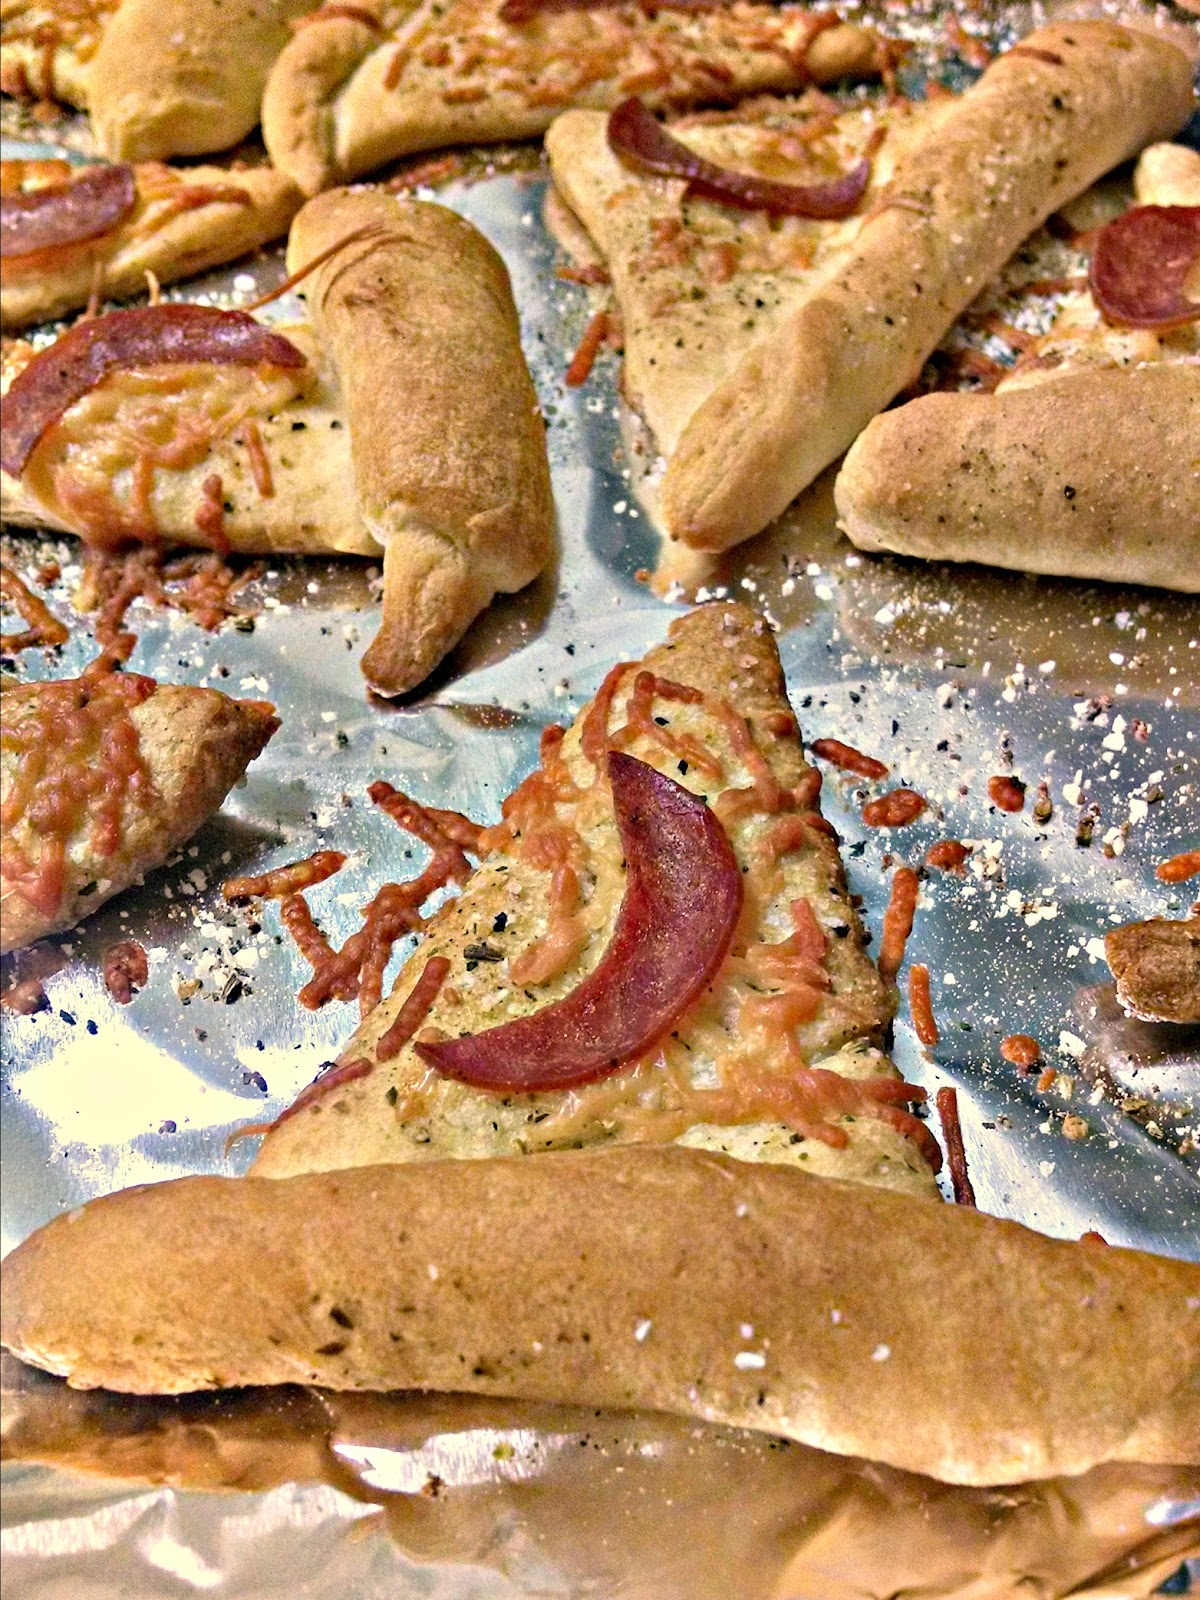 Witch Hats are quick to whip up with ingredients you probably already have. Some crescent roll dough, pepperoni, and Parmesan cheese make up these simple and tasty treats for Halloween.